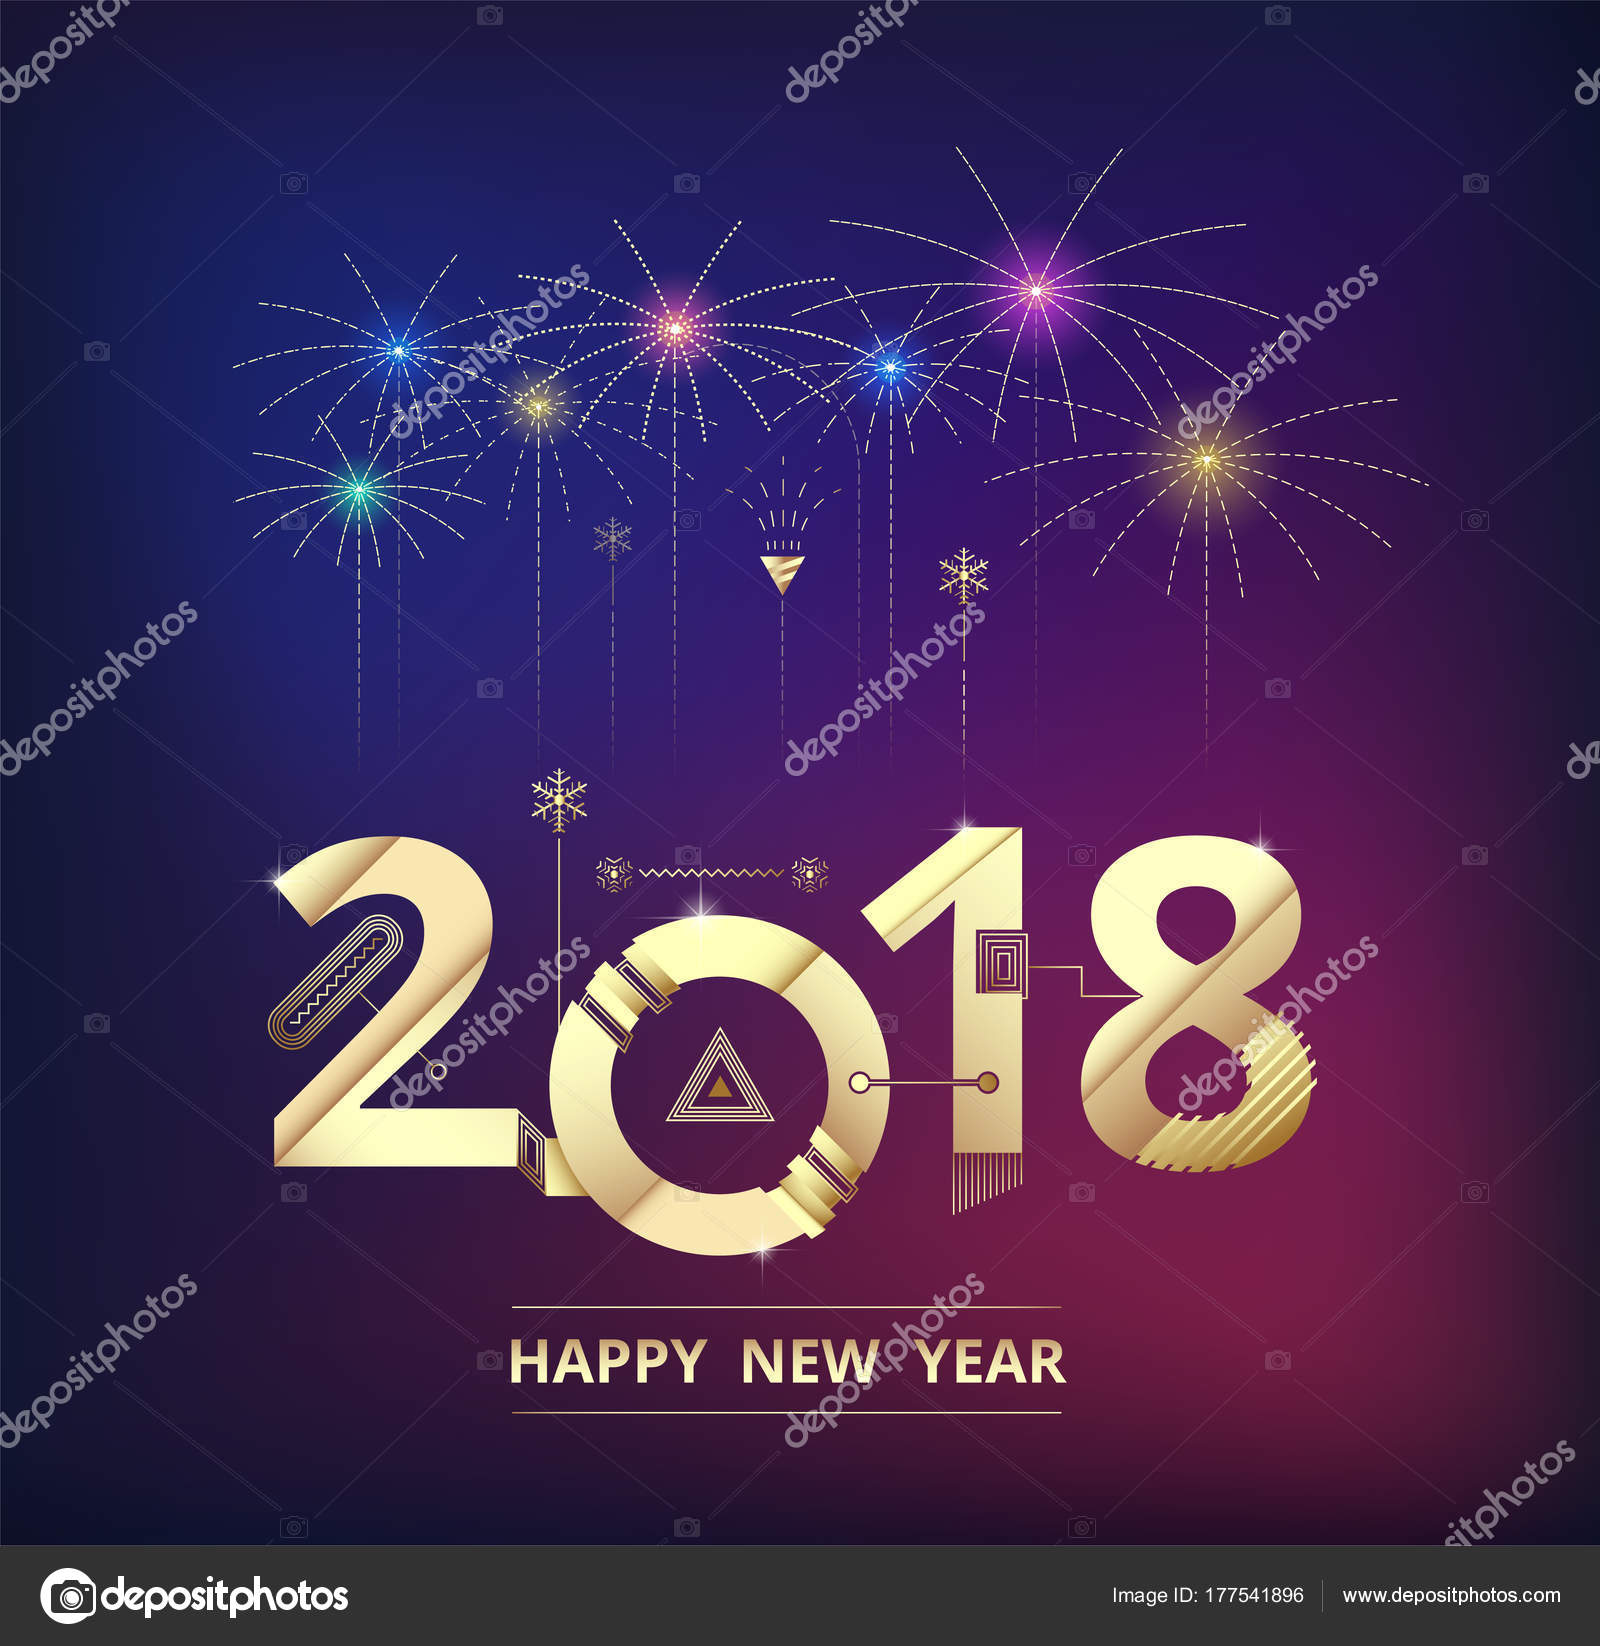 2018 Happy New Year Background Celebration Firework Design Simple Firework  — Stock Vector 5aac433a78280